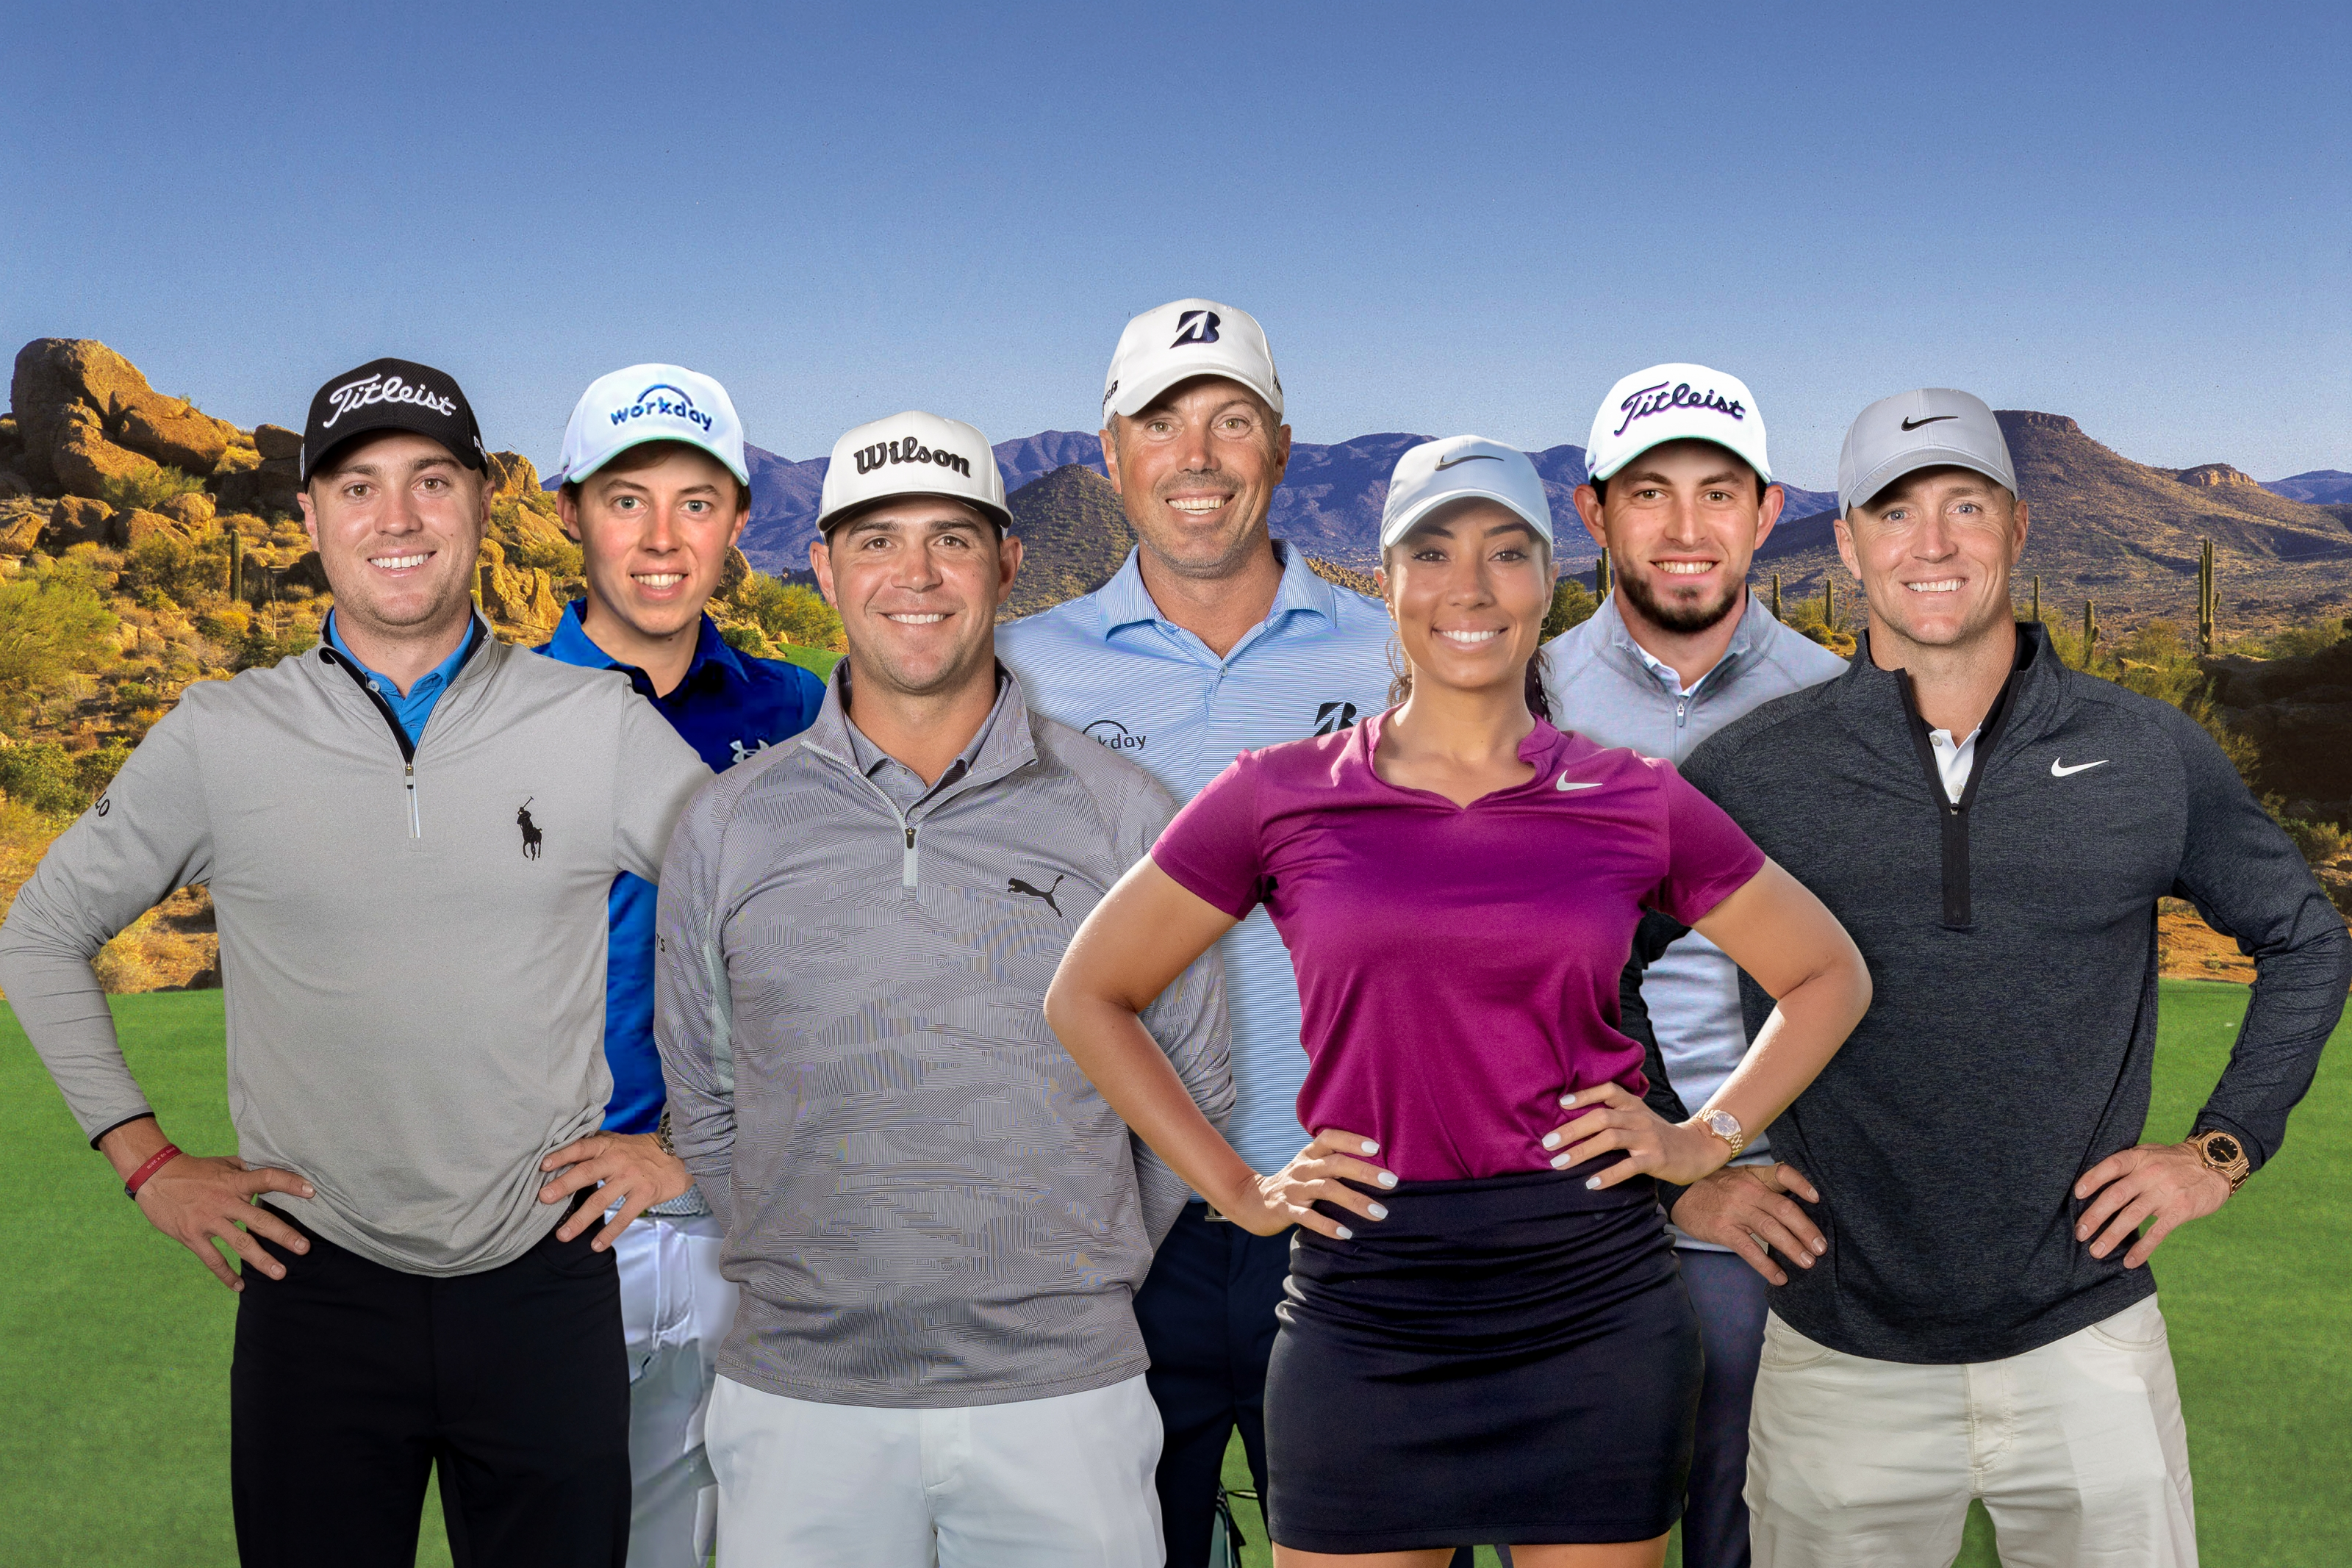 Team Troon on Tour: PGA TOUR Team Troon Players Prepping For The Open Championship